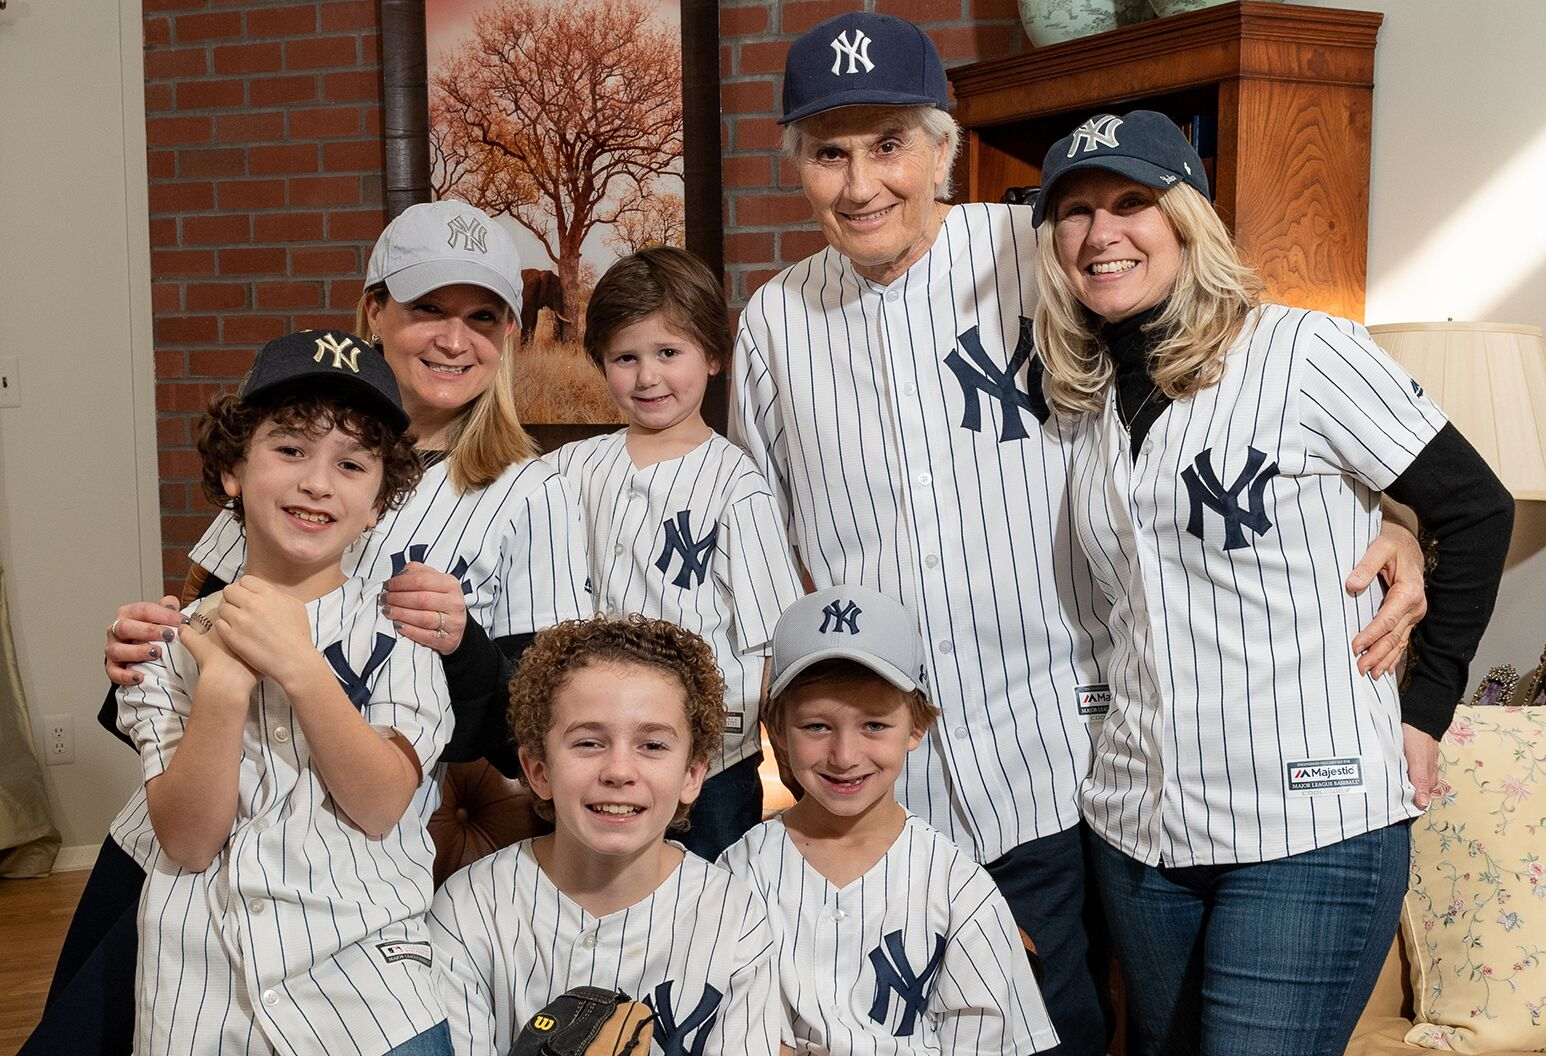 Three generations of a family smile and wear Yankees shirts in a living room.